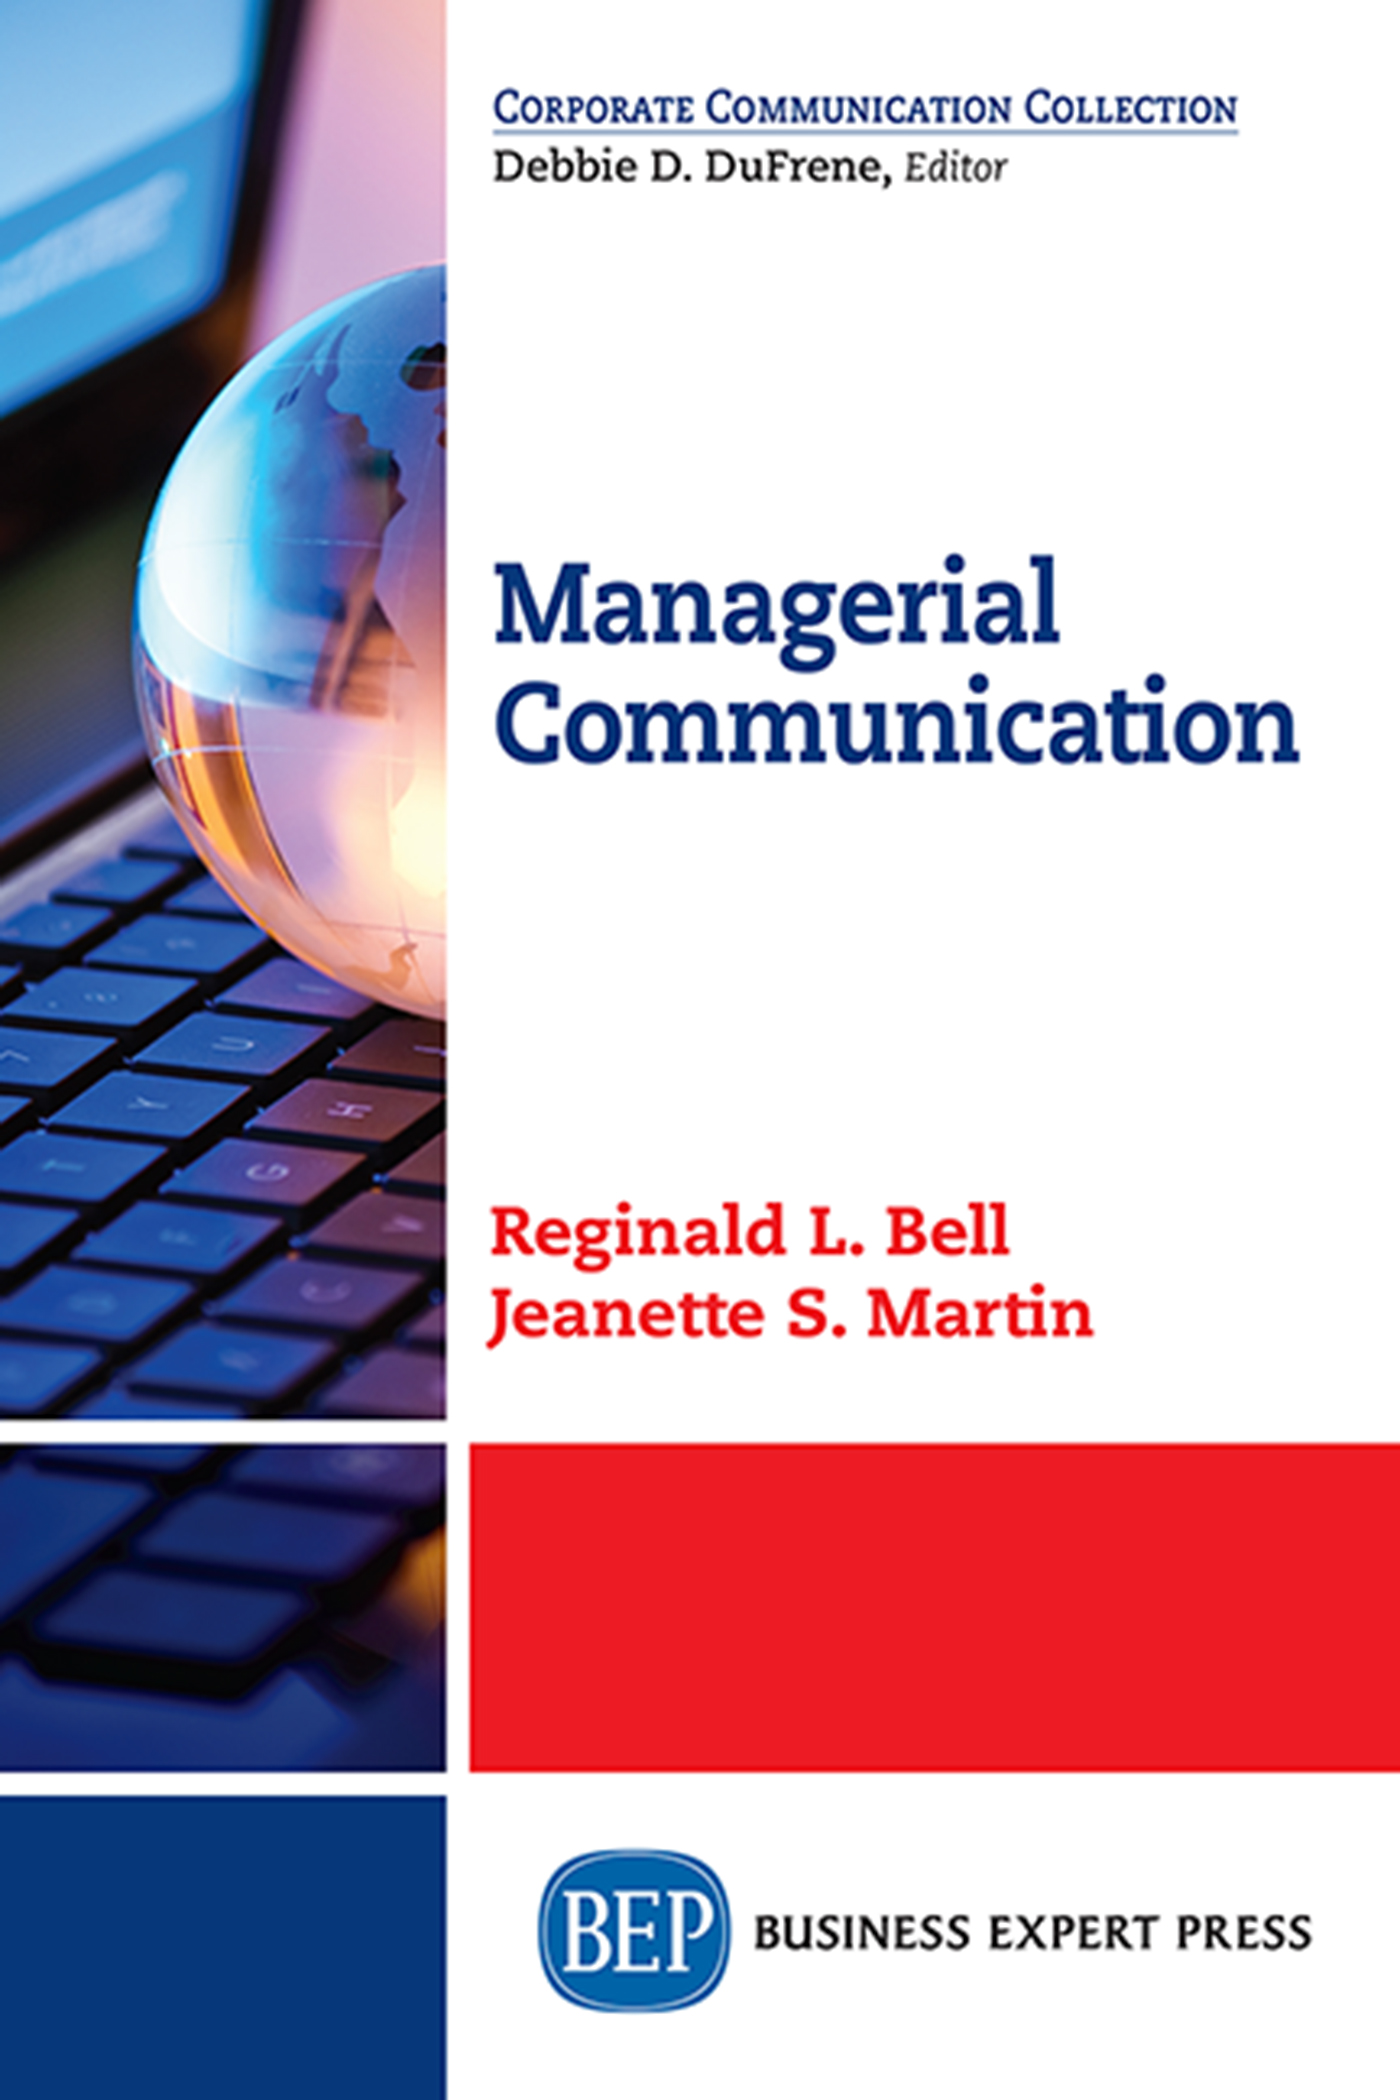 Download Ebook Managerial Communication by Reginald L. Bell Pdf